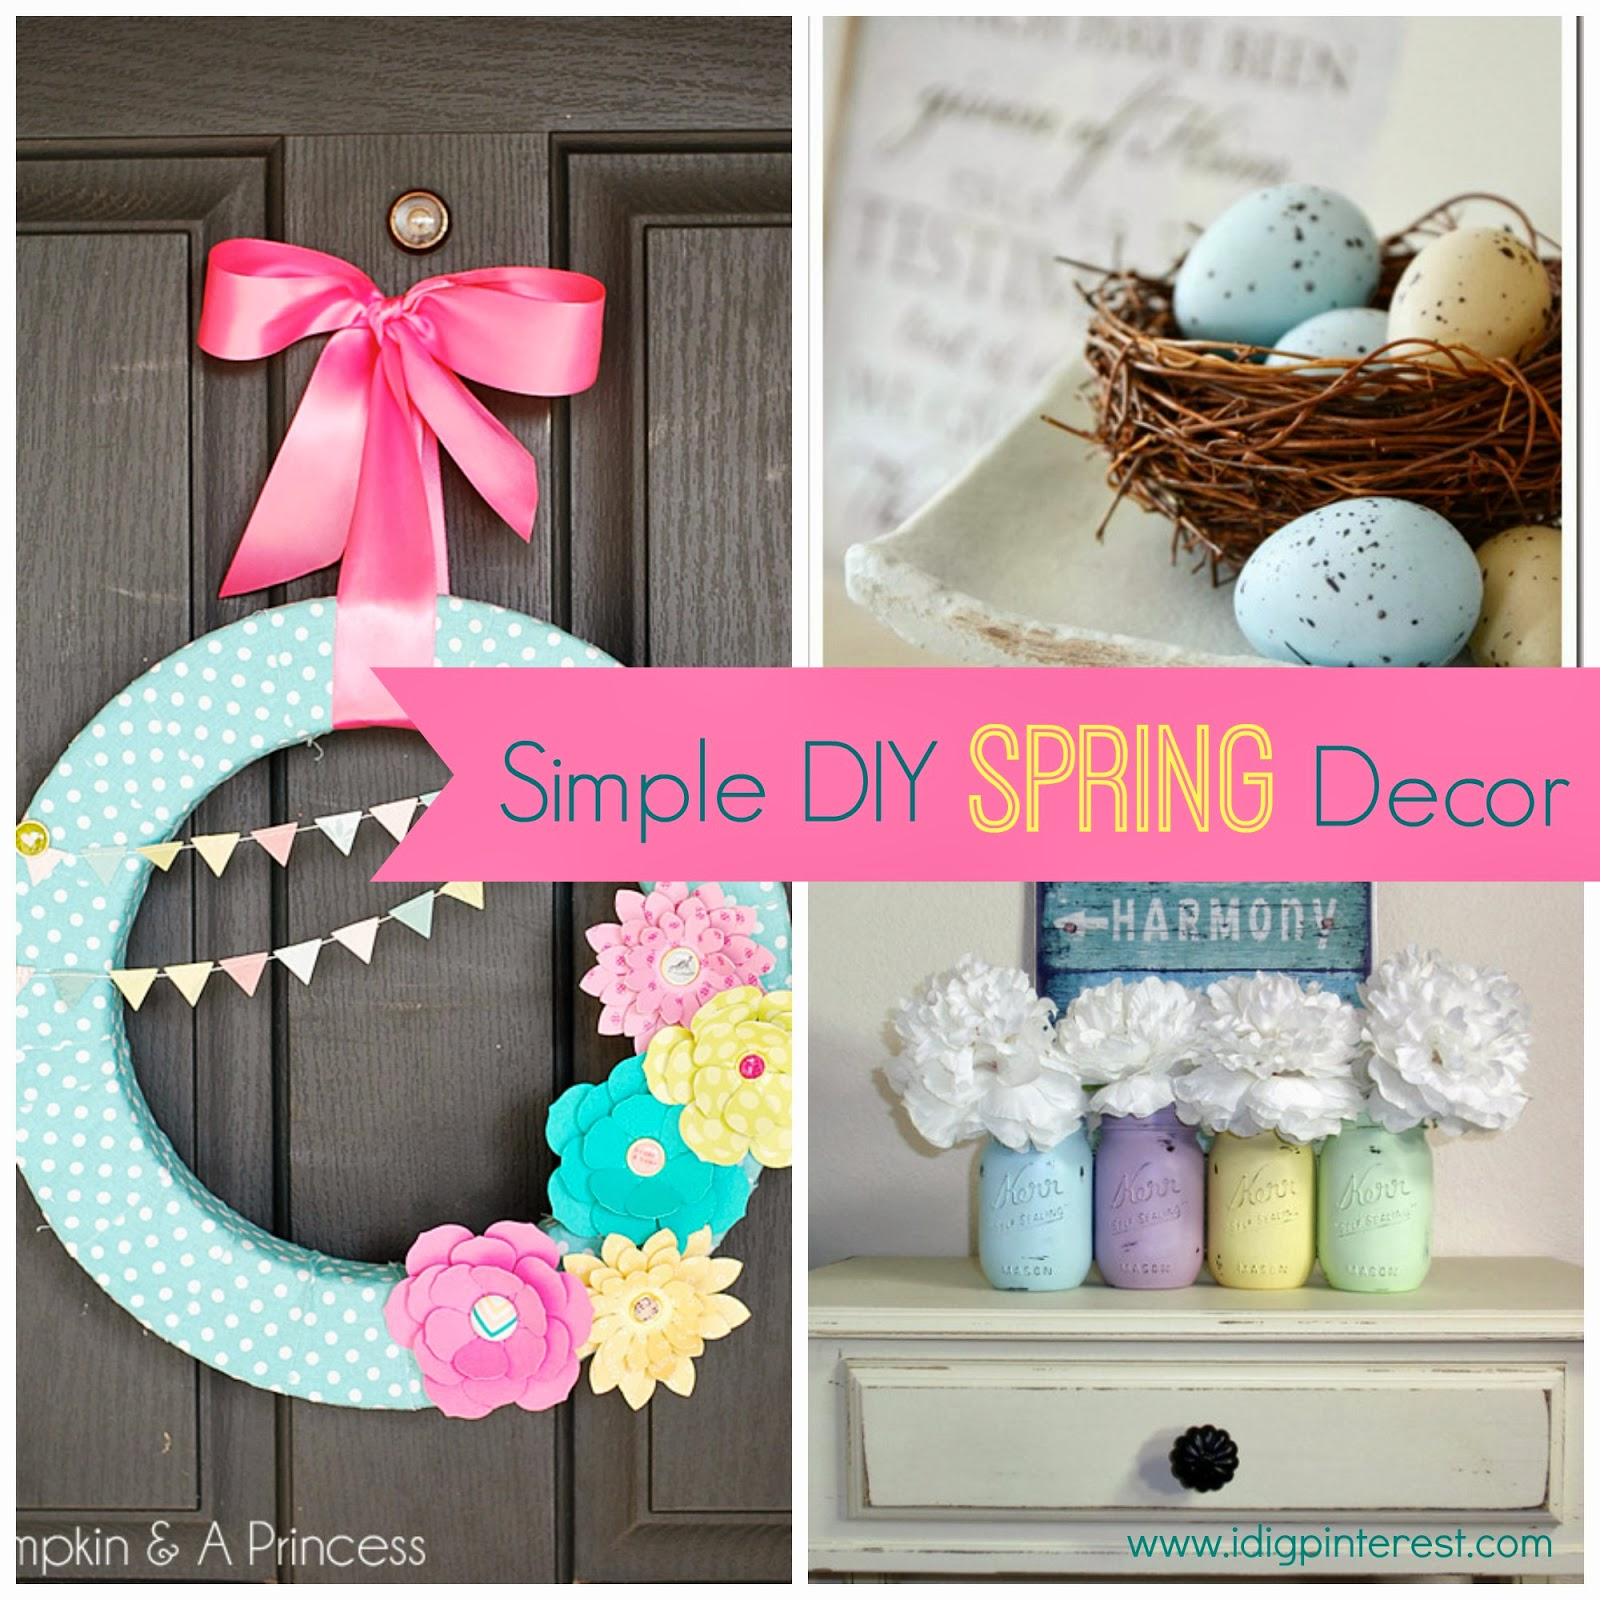 Simple diy spring decor ideas i dig pinterest for Pinterest crafts for home decor